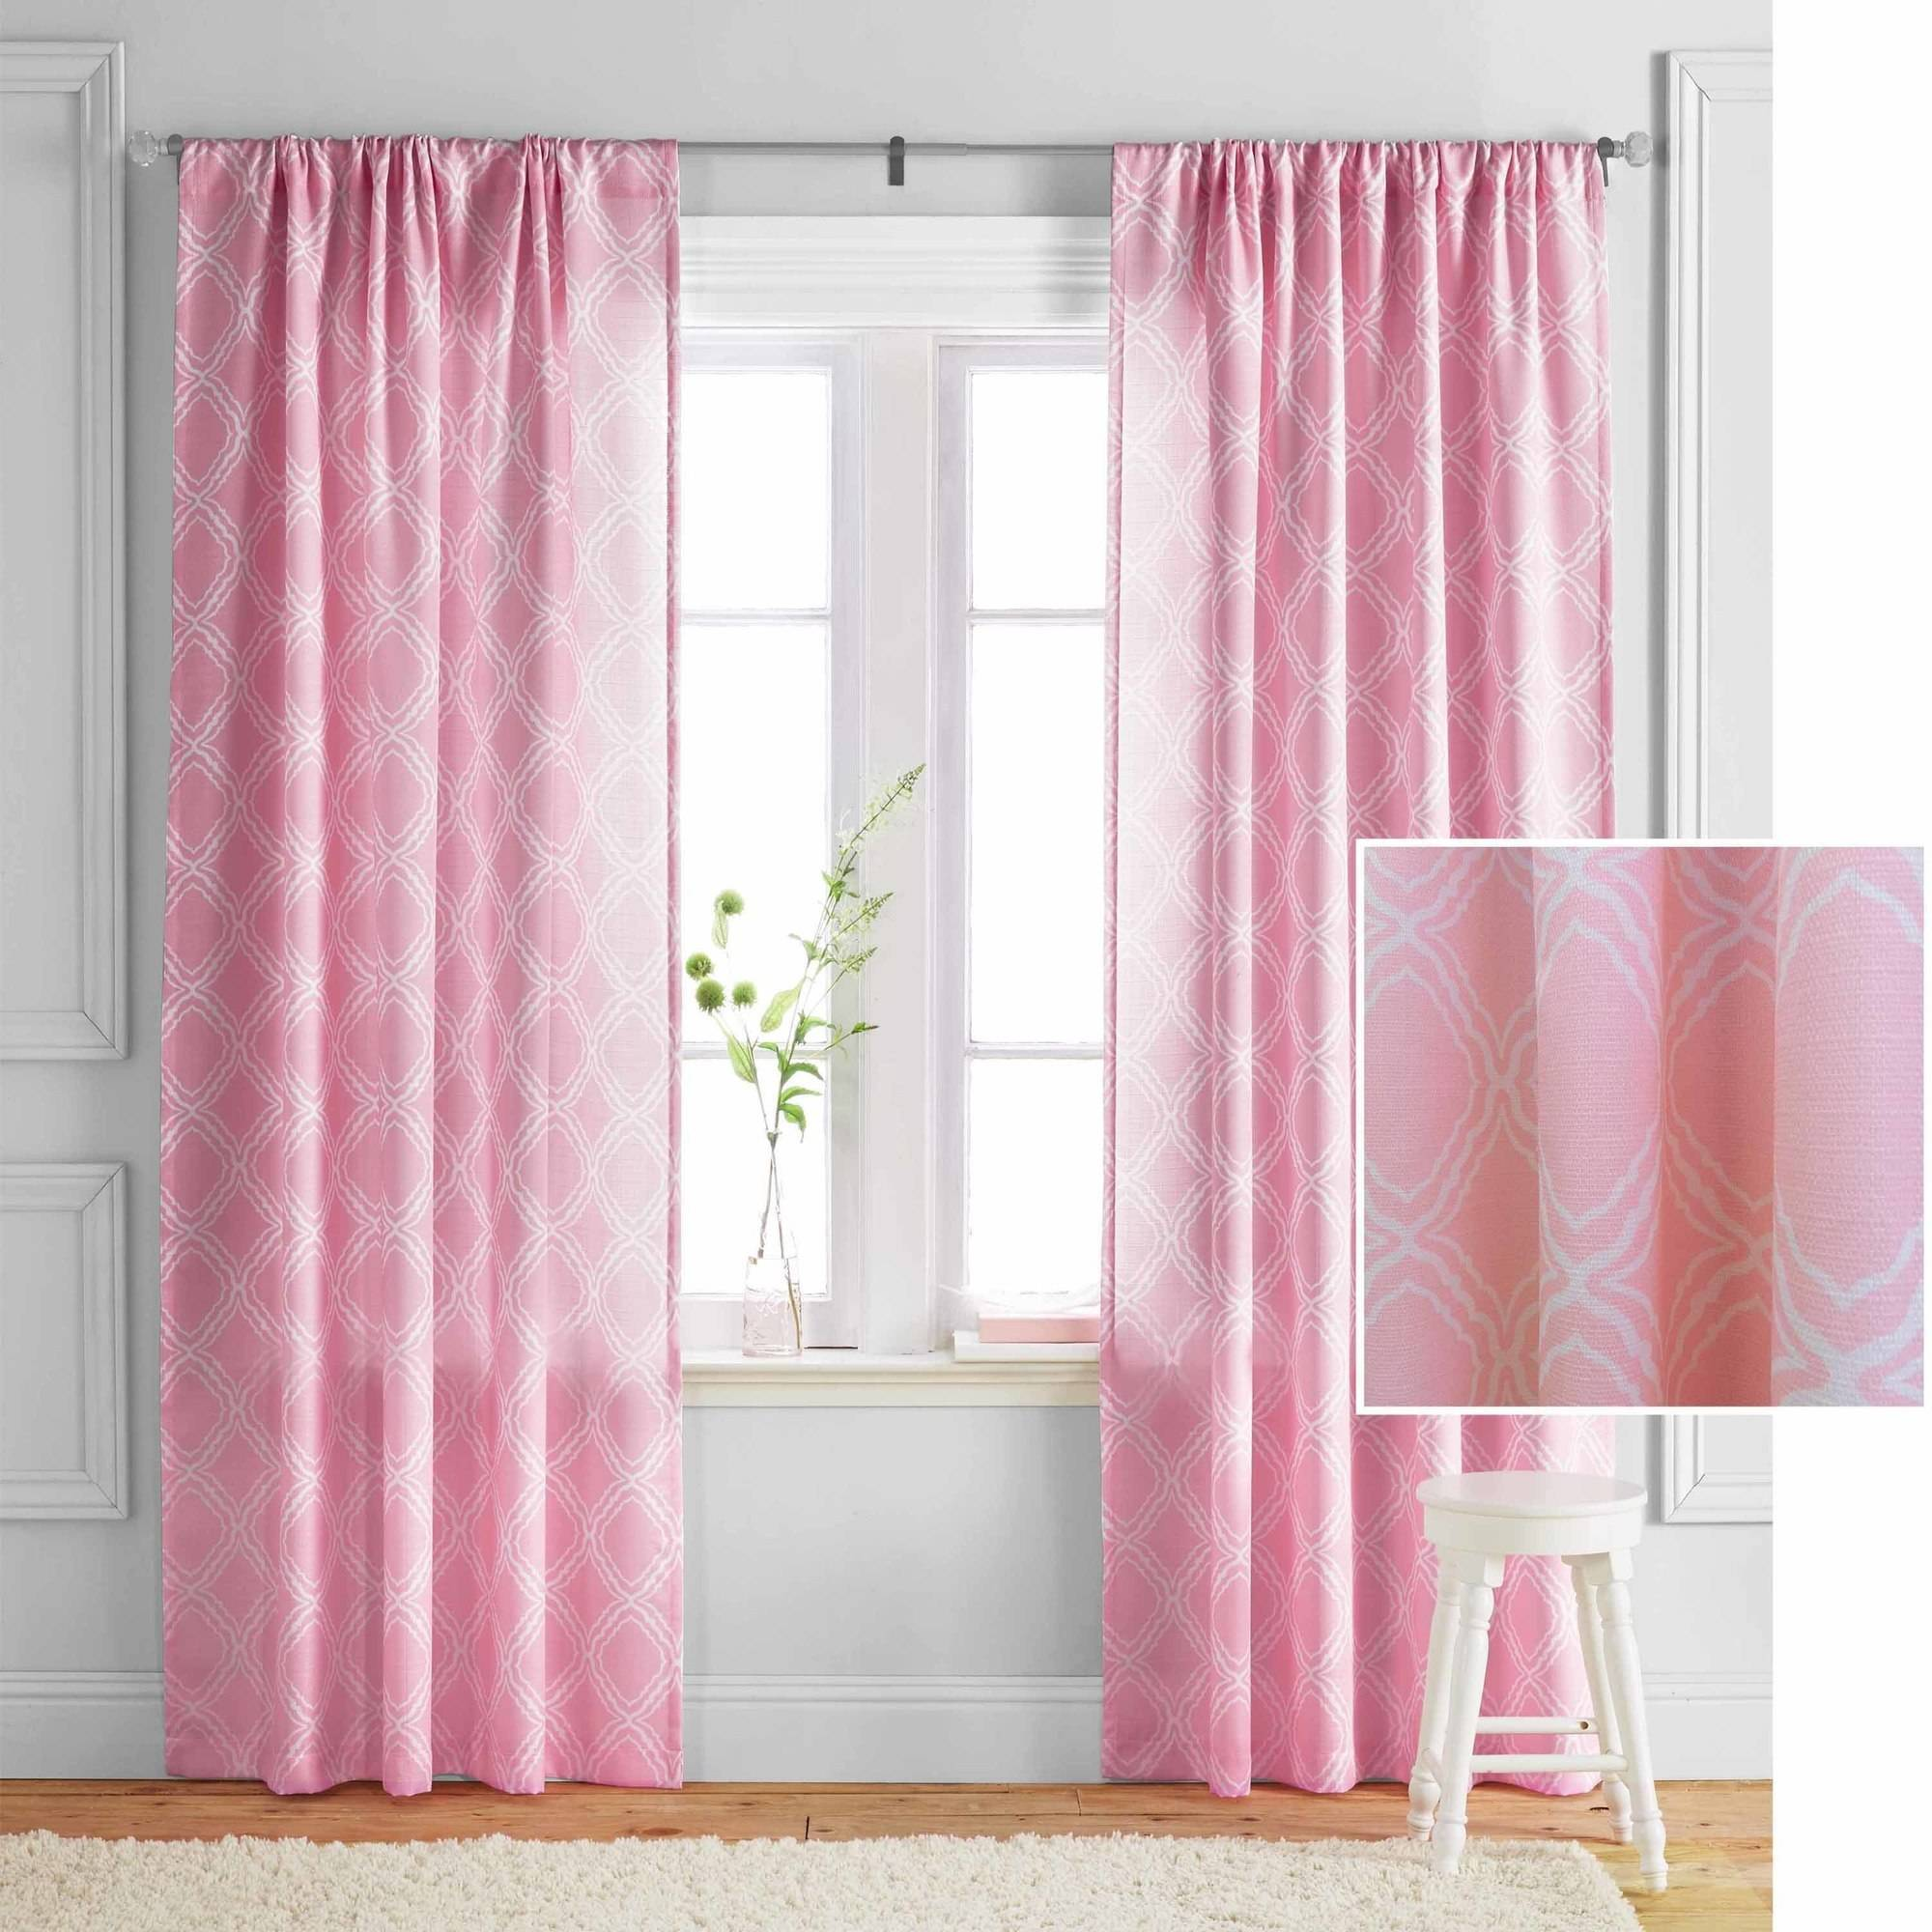 Better Homes and Gardens Trellis Curtain Panel